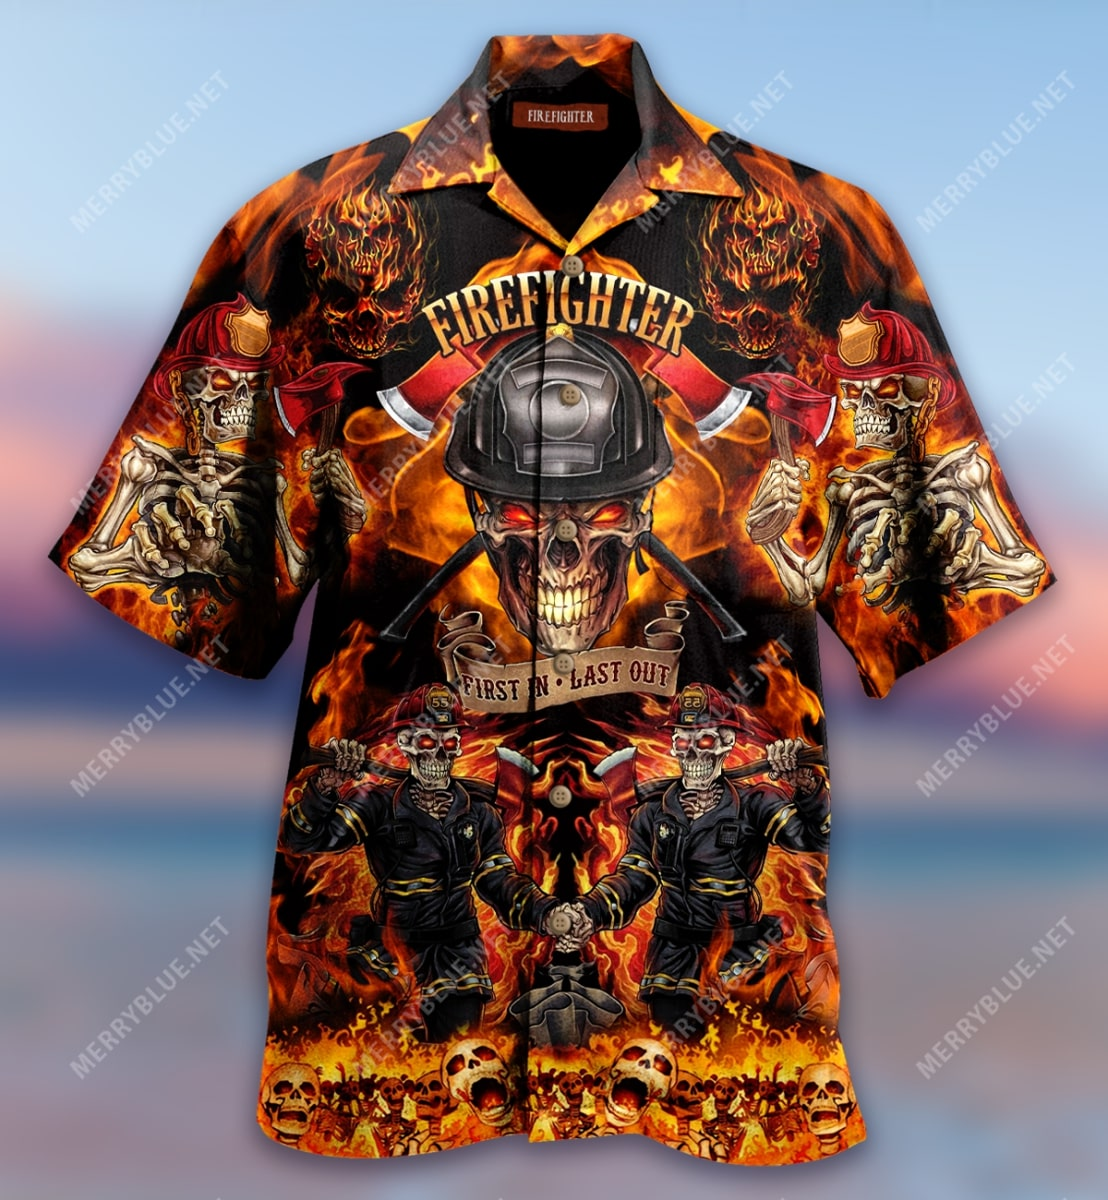 firefighter first in last out all over print hawaiian shirt 2